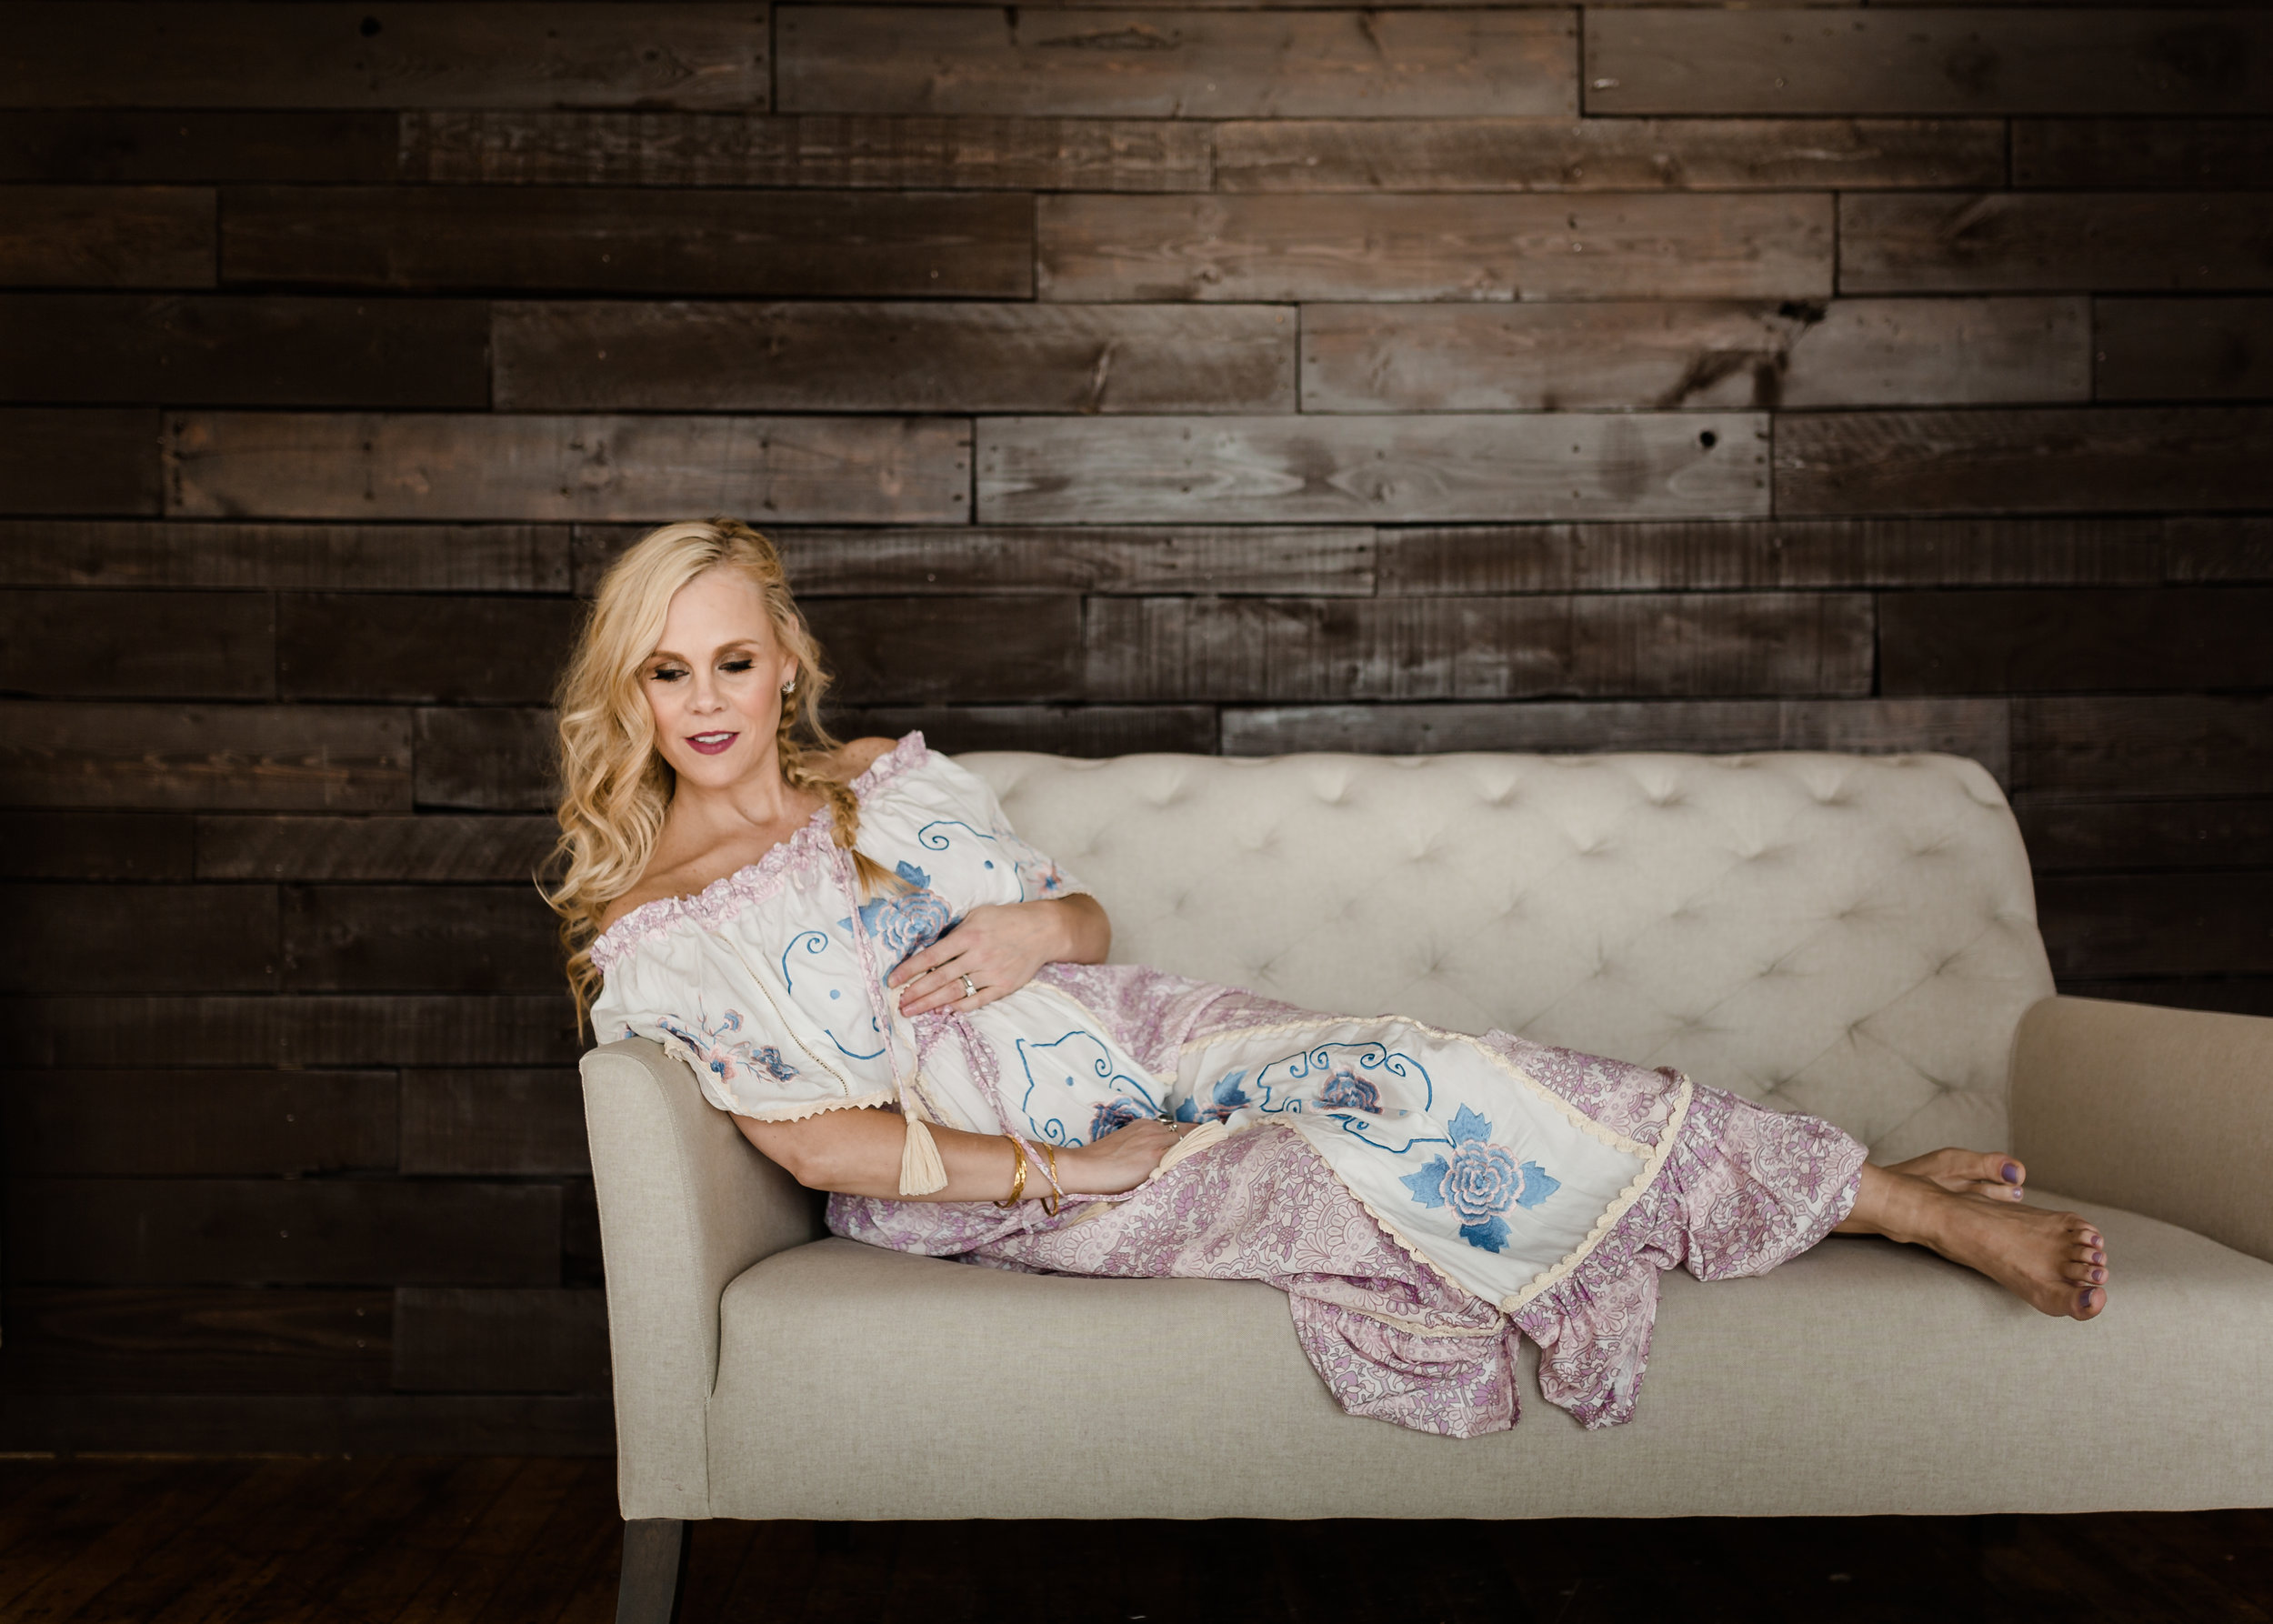 CHICAGO maternity bohemian chic lifestyle photography session